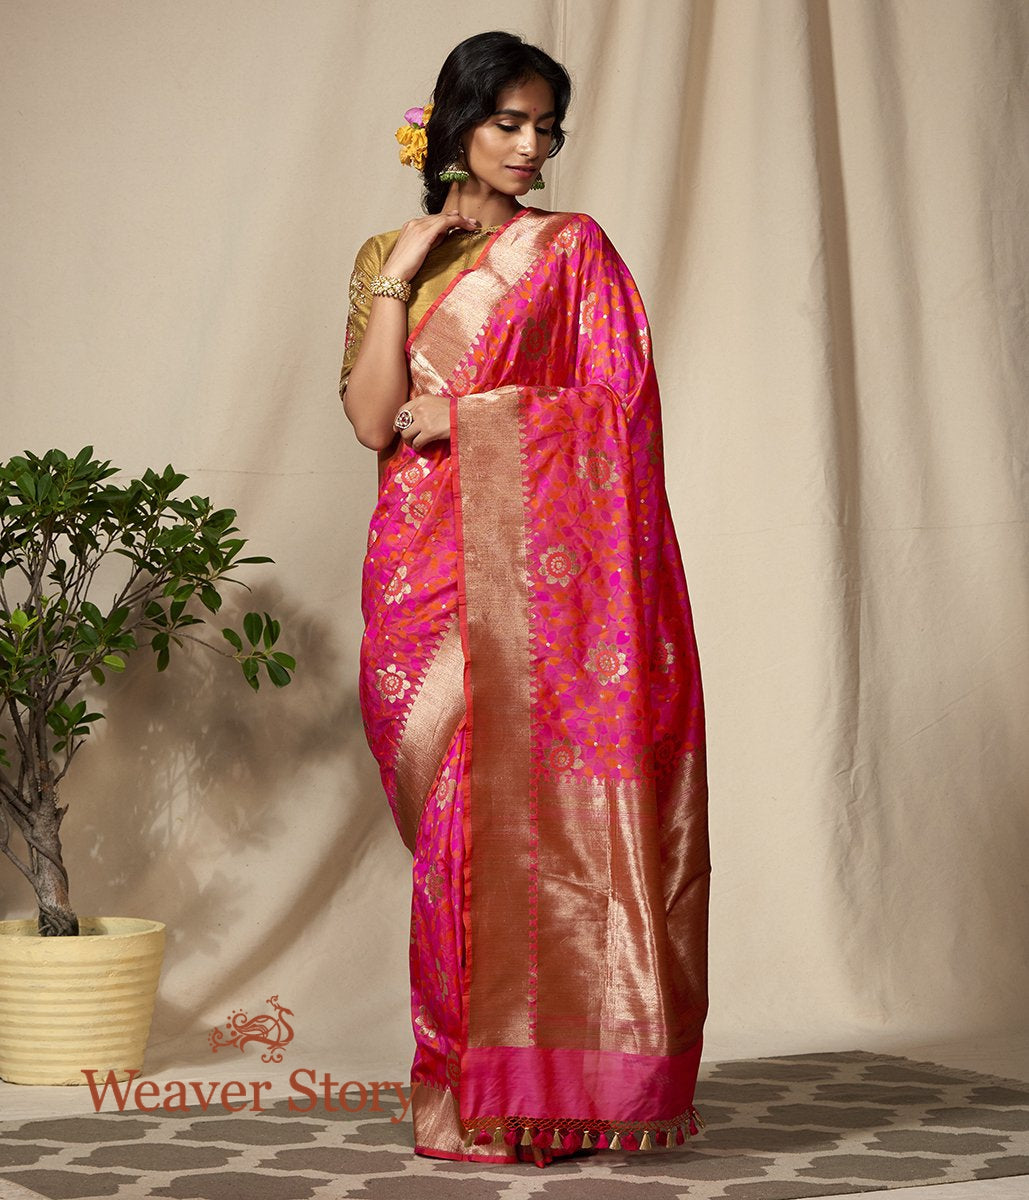 Handwoven Pink and Orange Antique Zari Floral Jaal Saree